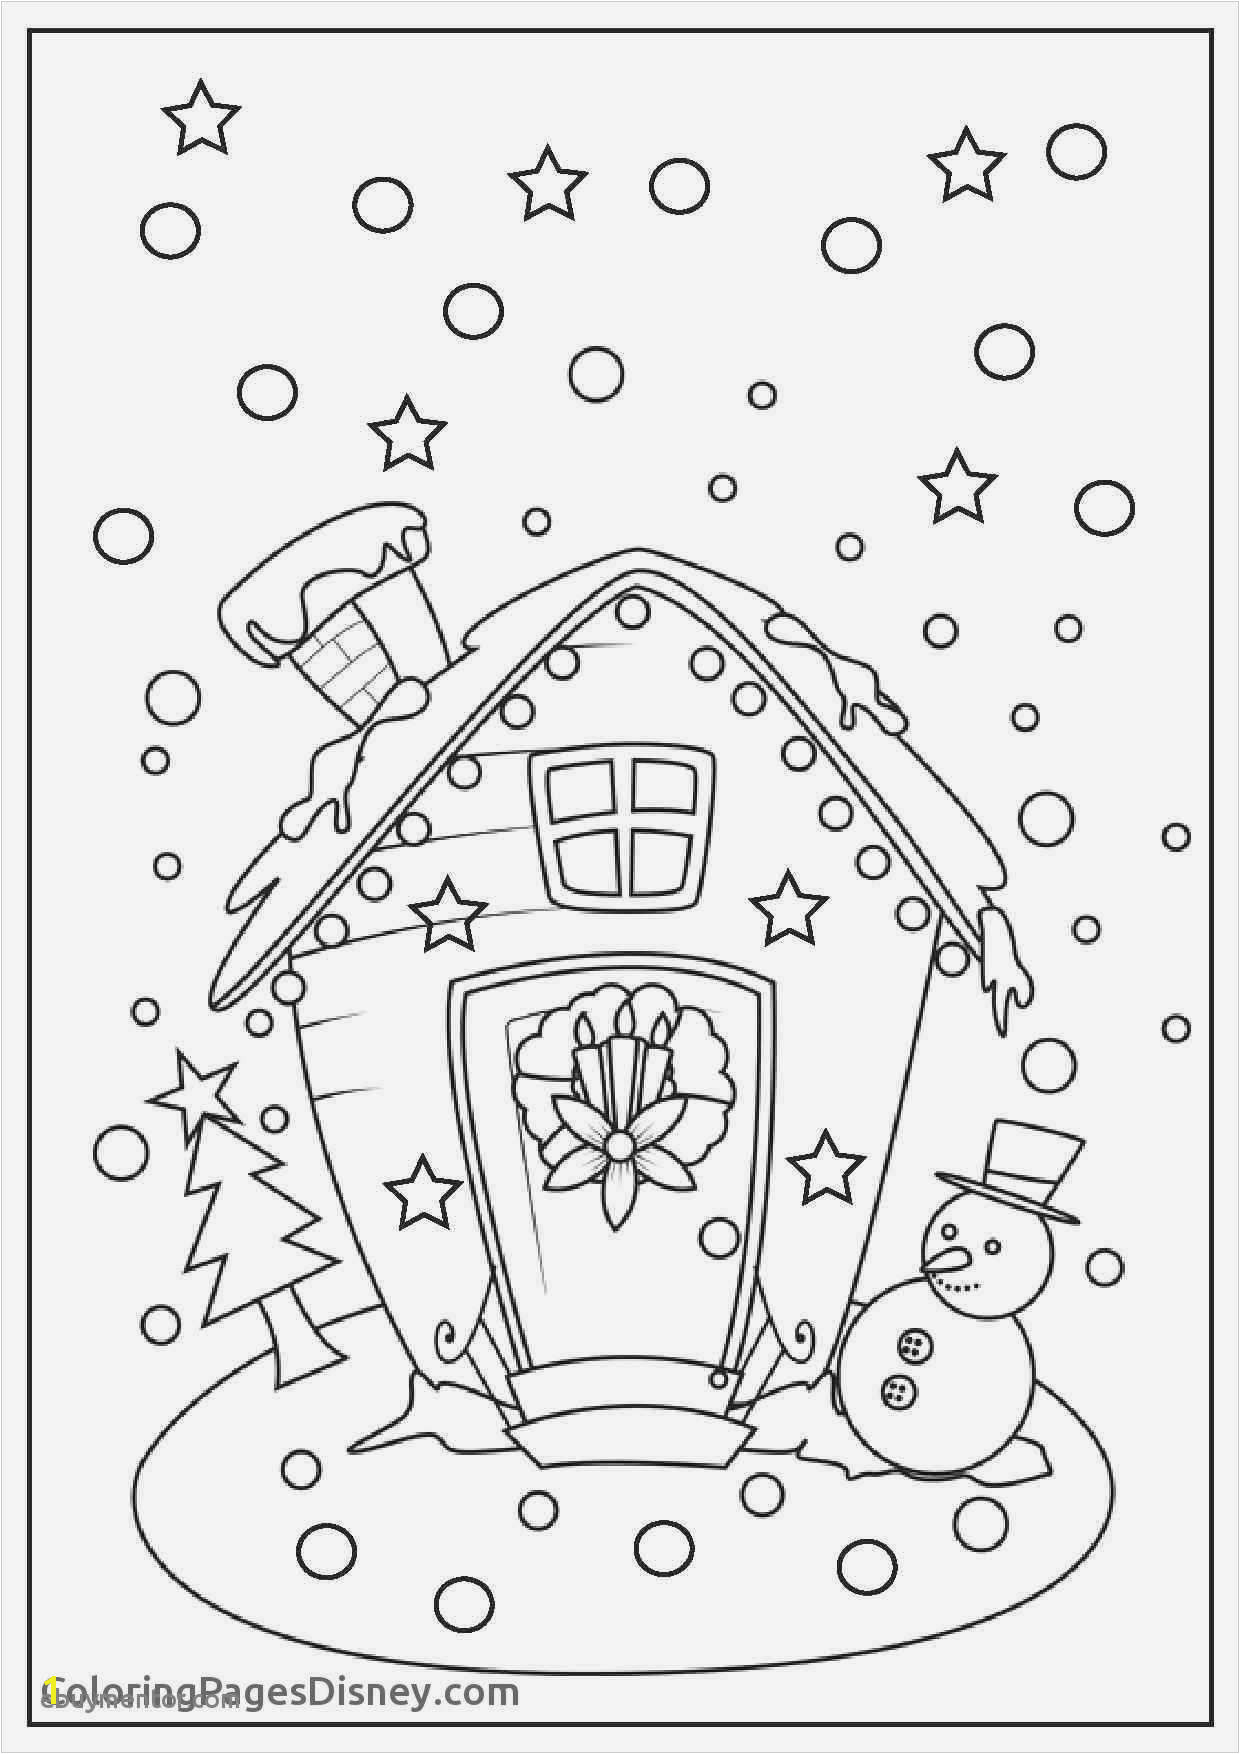 Medium Level Coloring Pages Free Christmas Coloring Pages for Kids Cool Coloring Printables 0d